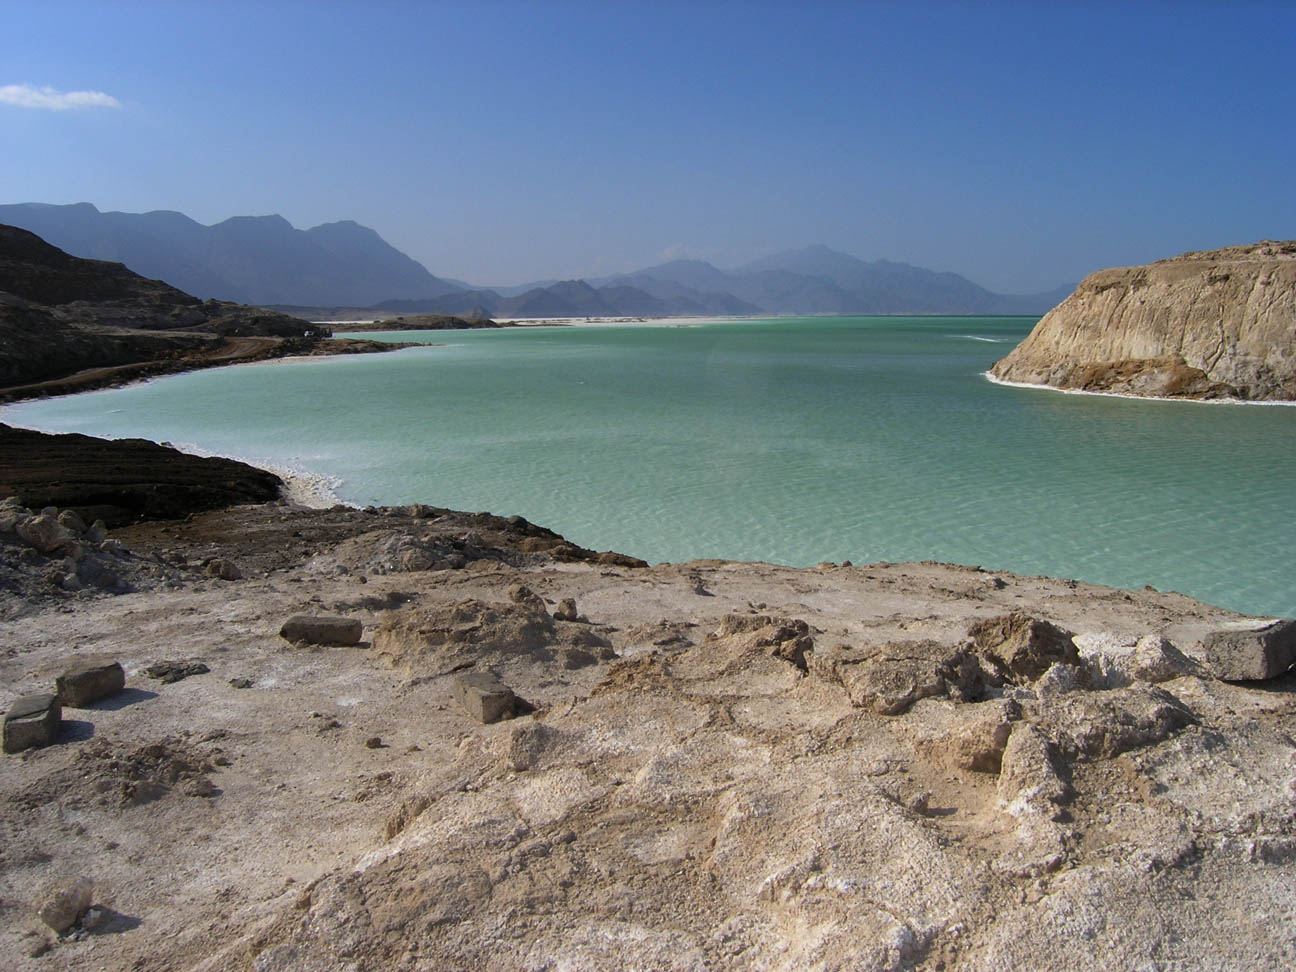 lac assal2 nov 2004.jpg